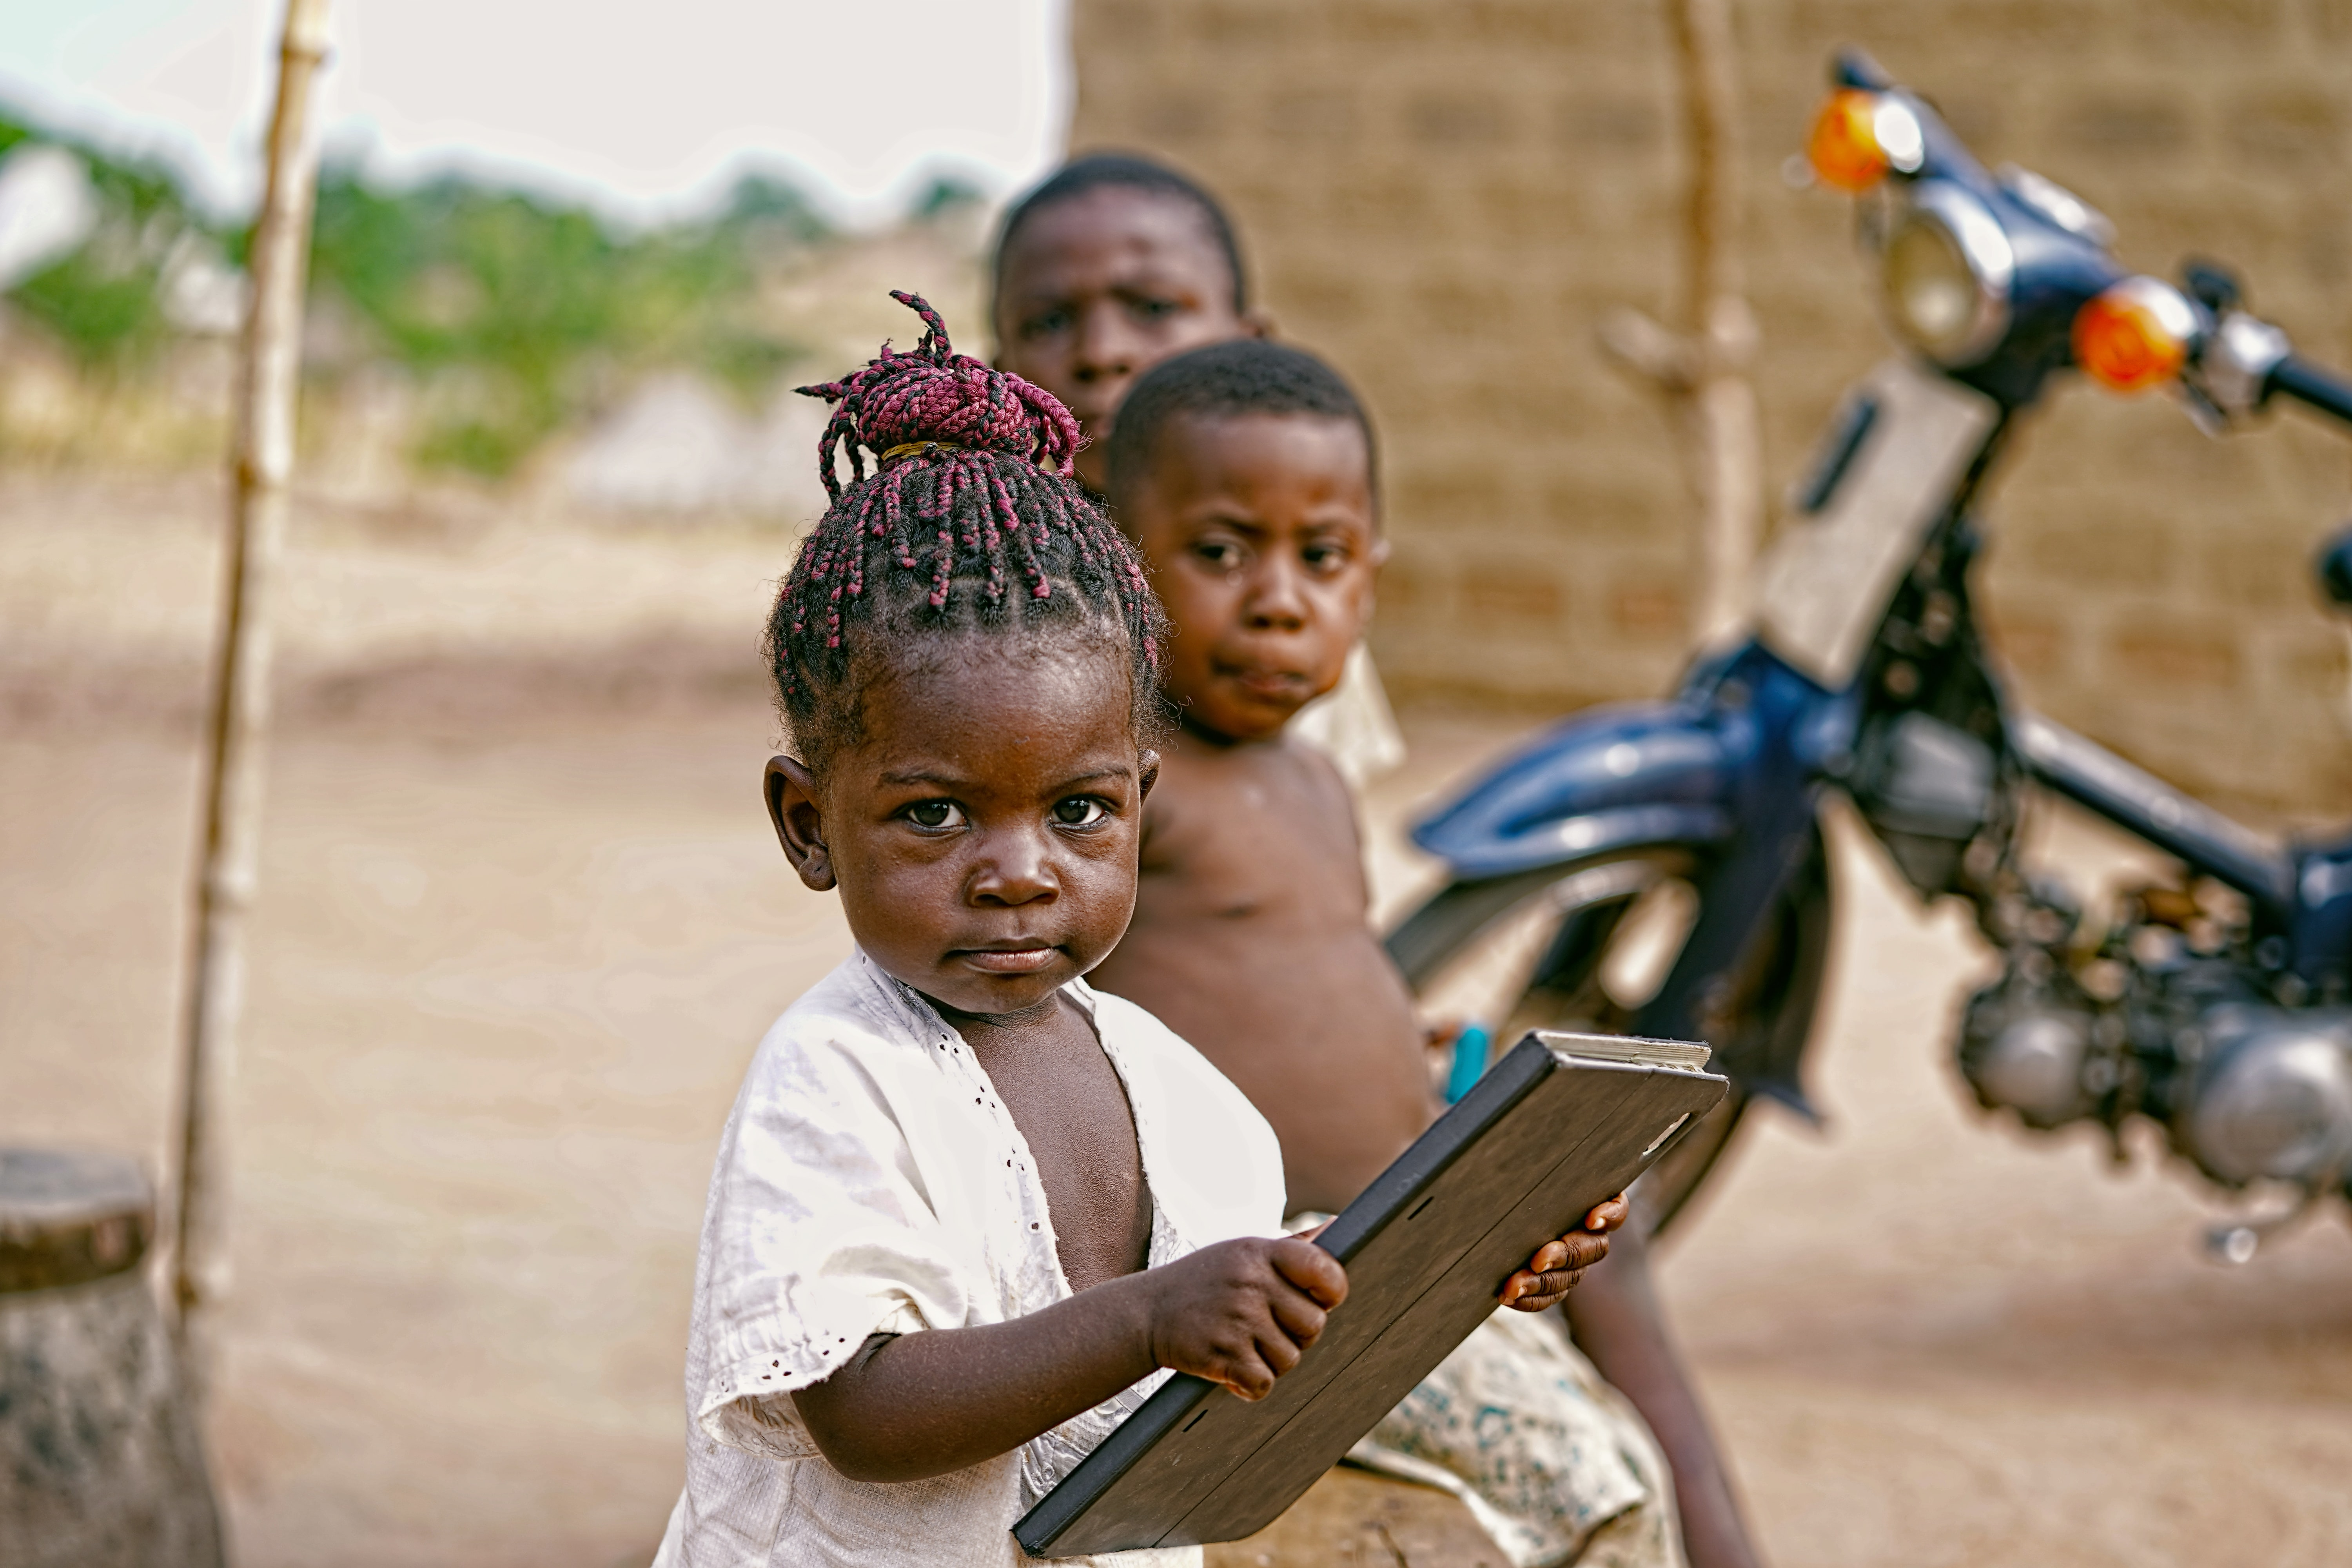 girl holding book near blue motorcycle